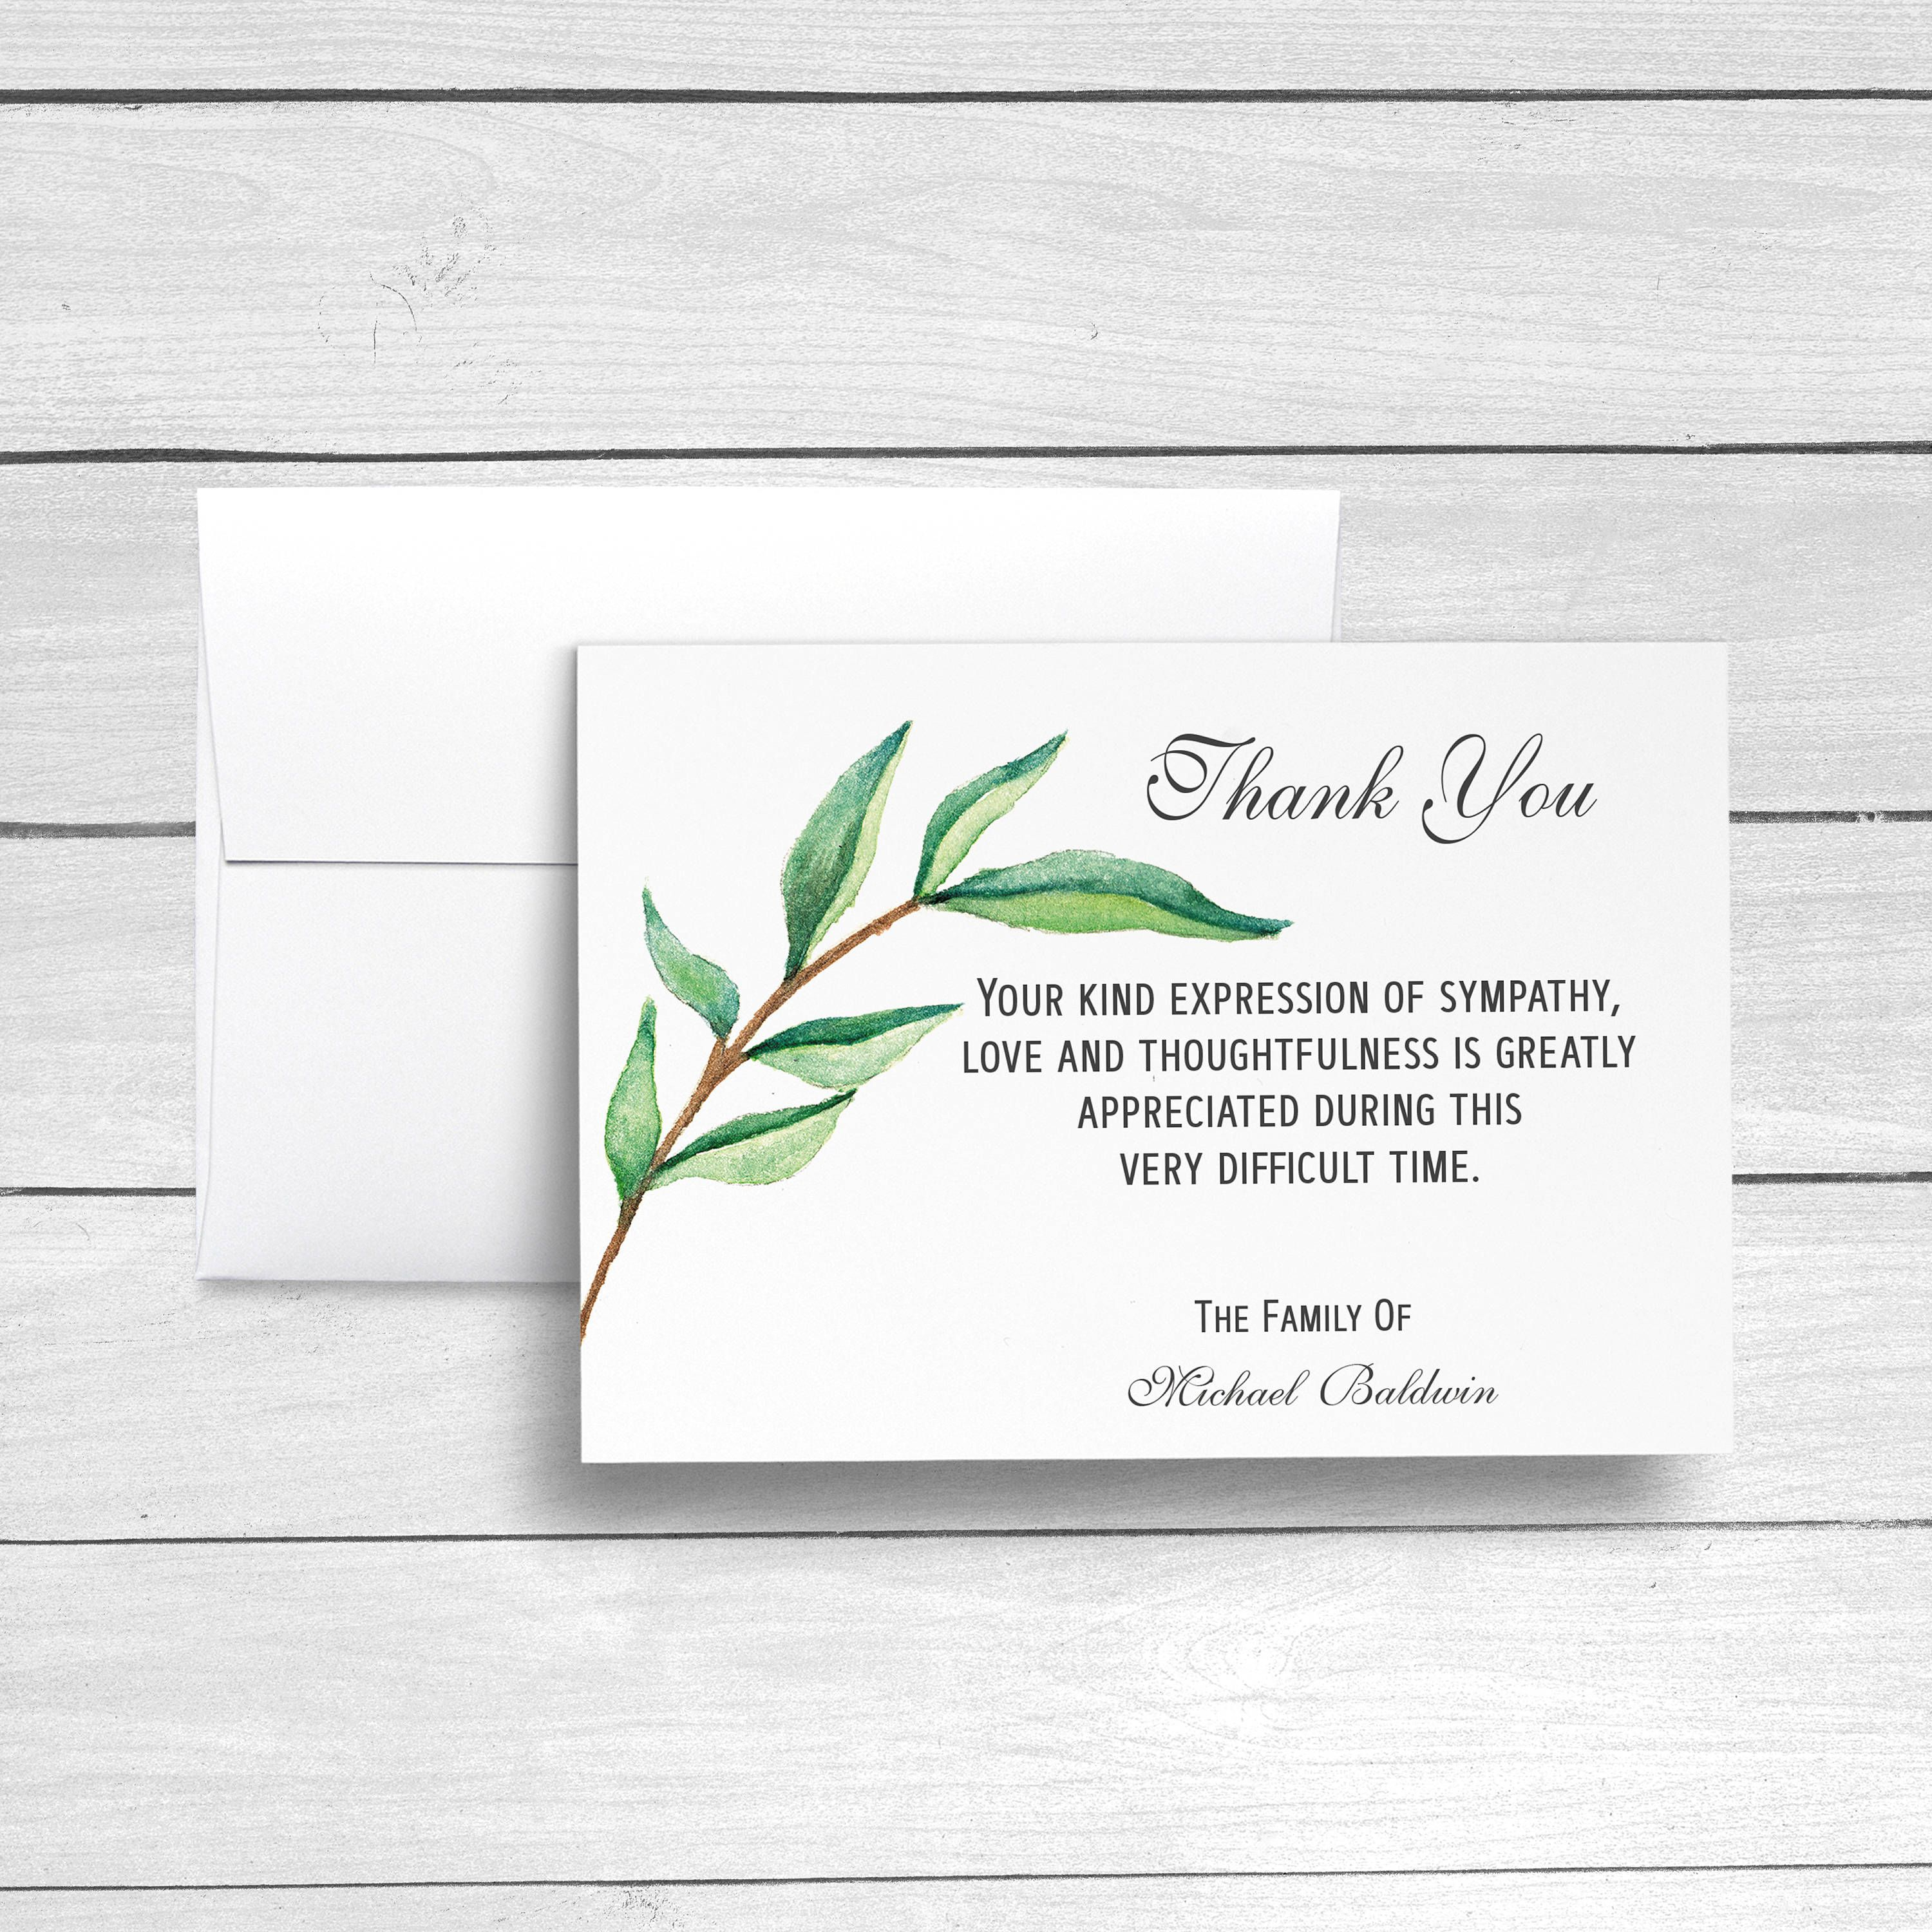 Funeral Thank You Cards Sympathy Acknowledgement Cards Bereavement Cards Sympathy T Words For Sympathy Card Sympathy Thank You Cards Funeral Thank You Cards